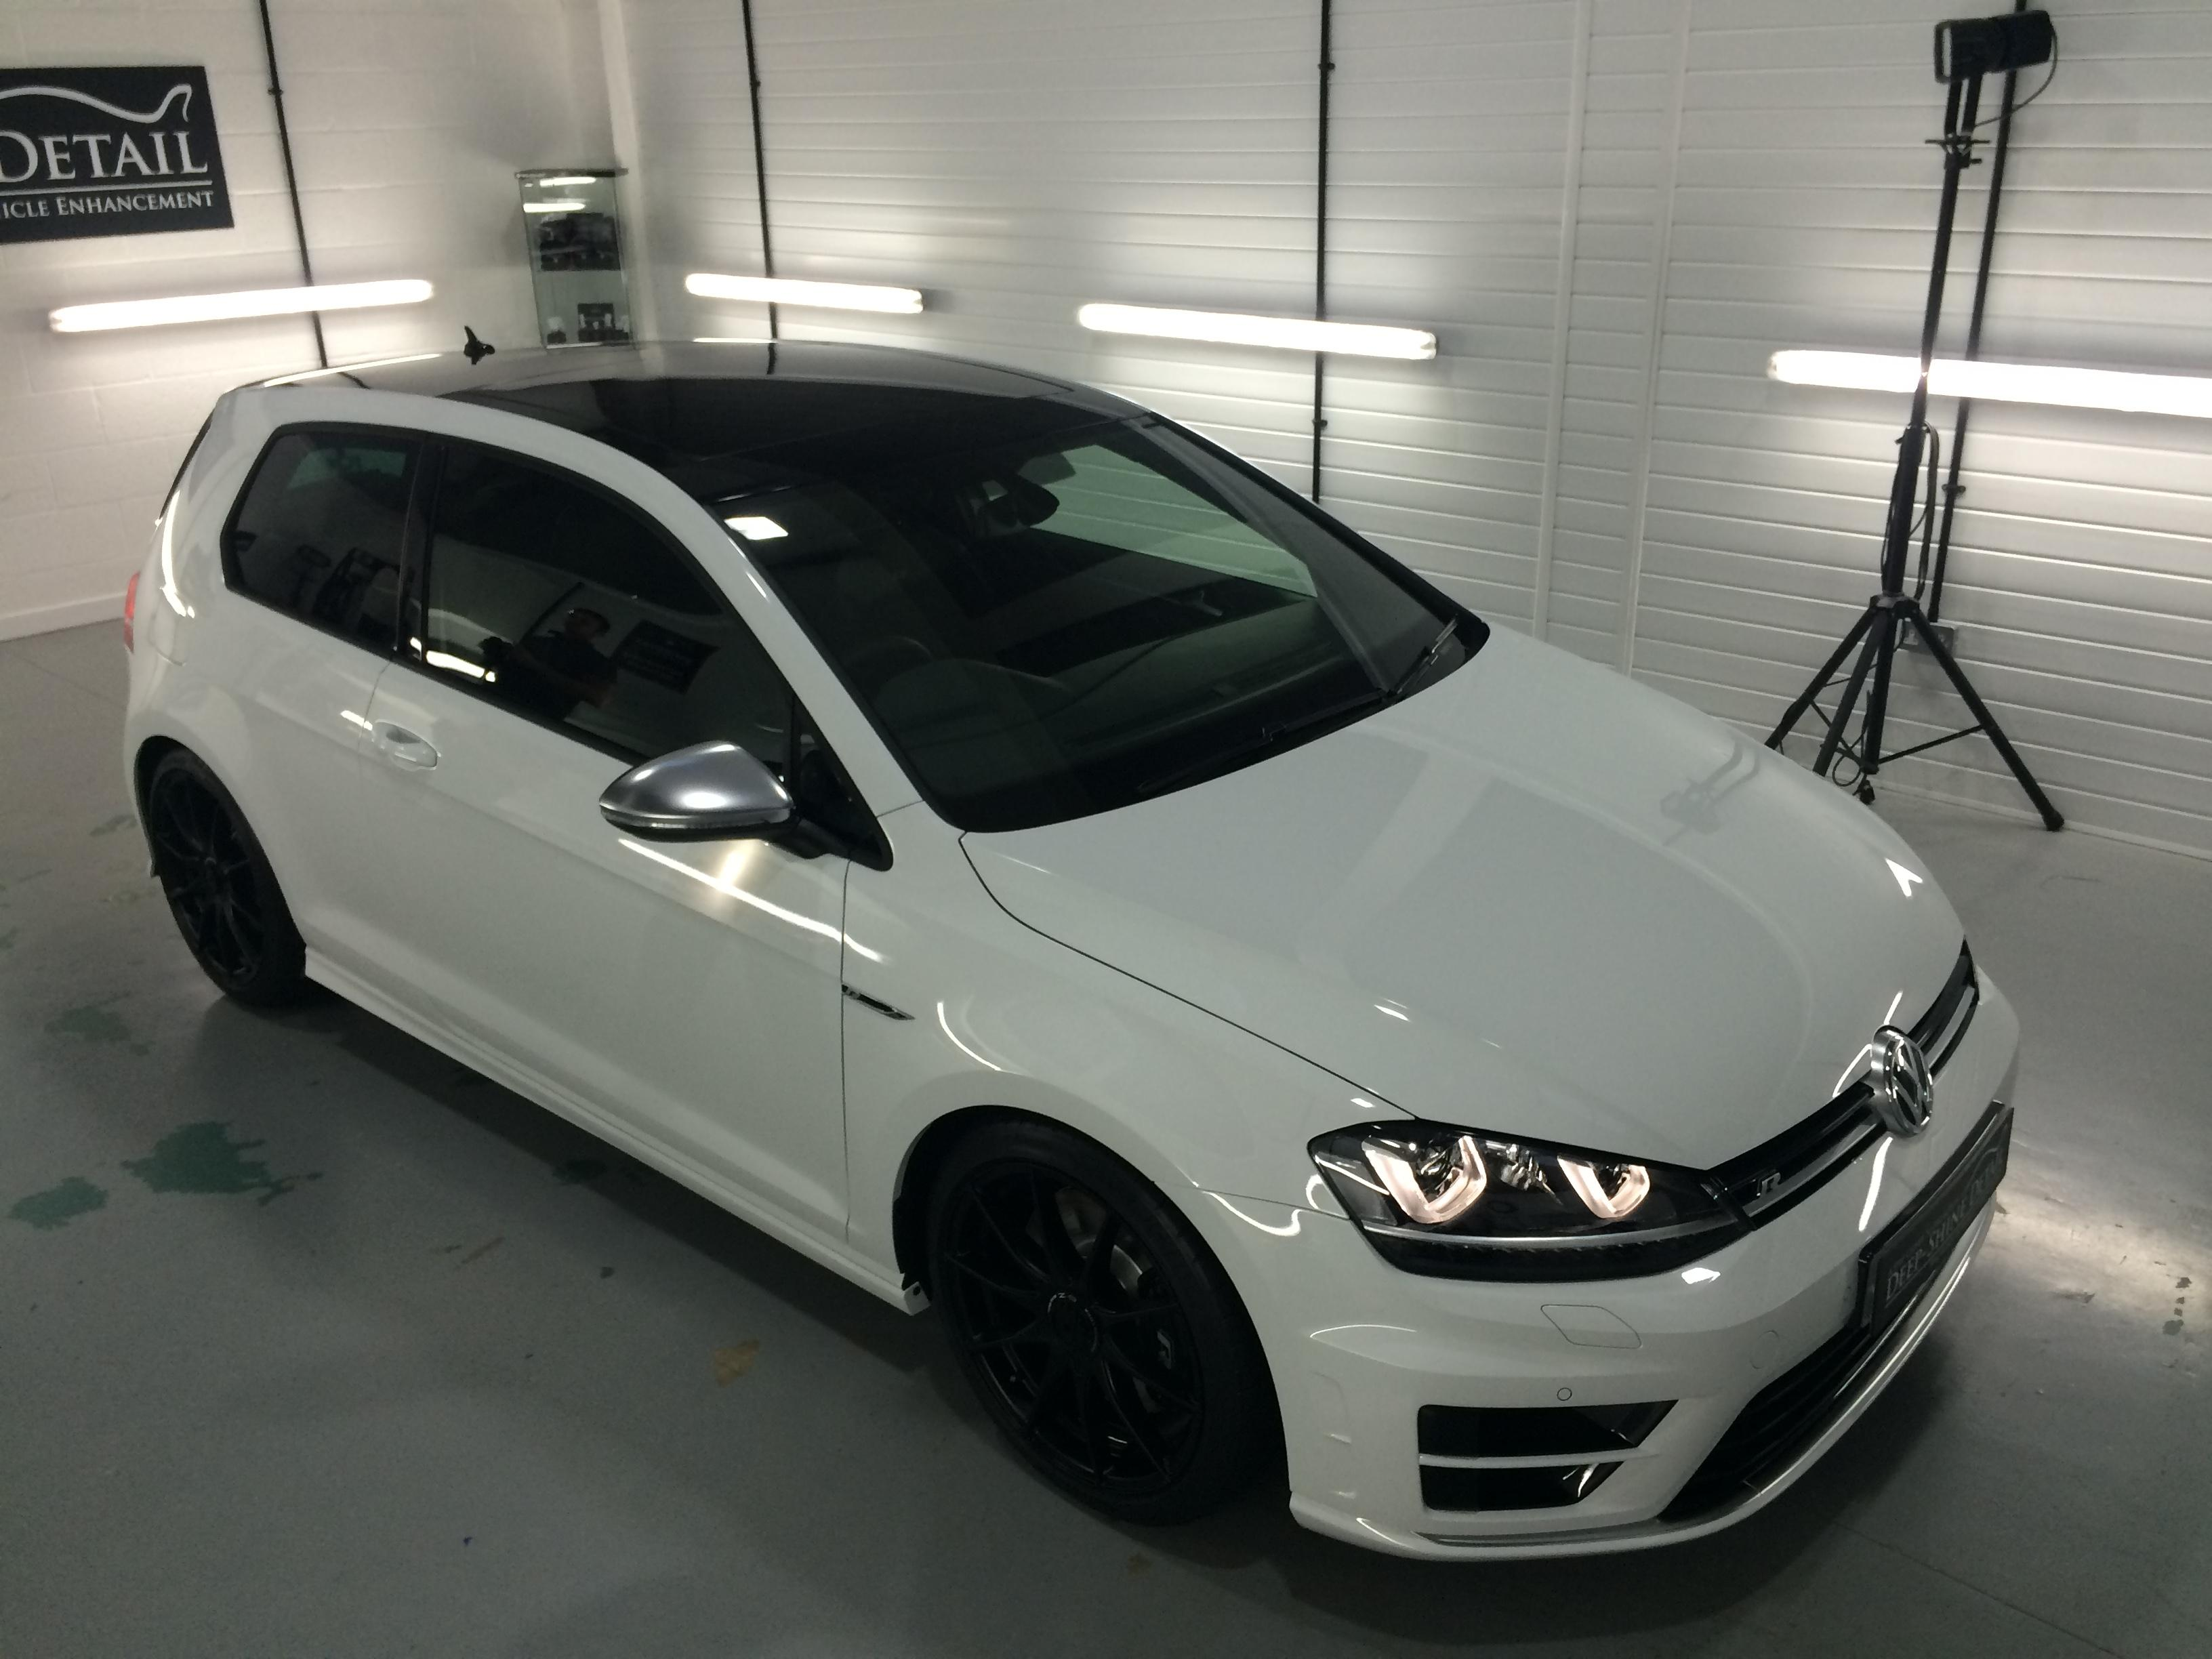 New 7r To Replace The Mk6gti Page 1 Mk7 Members Rides